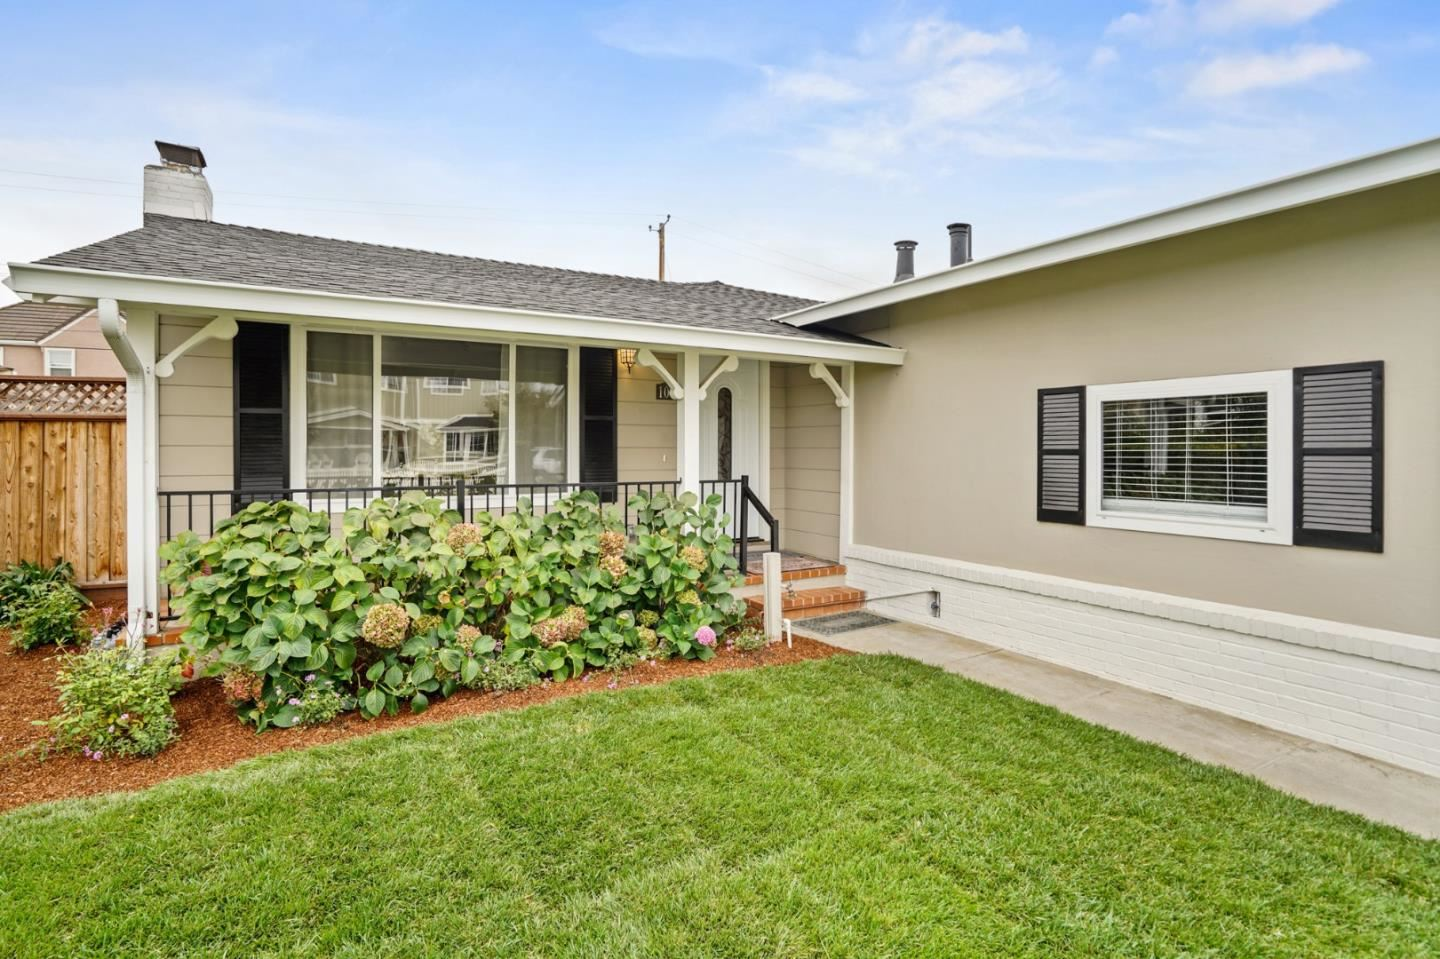 Photo for 1064 Lafayette ST, SAN MATEO, CA 94403 (MLS # ML81816192)